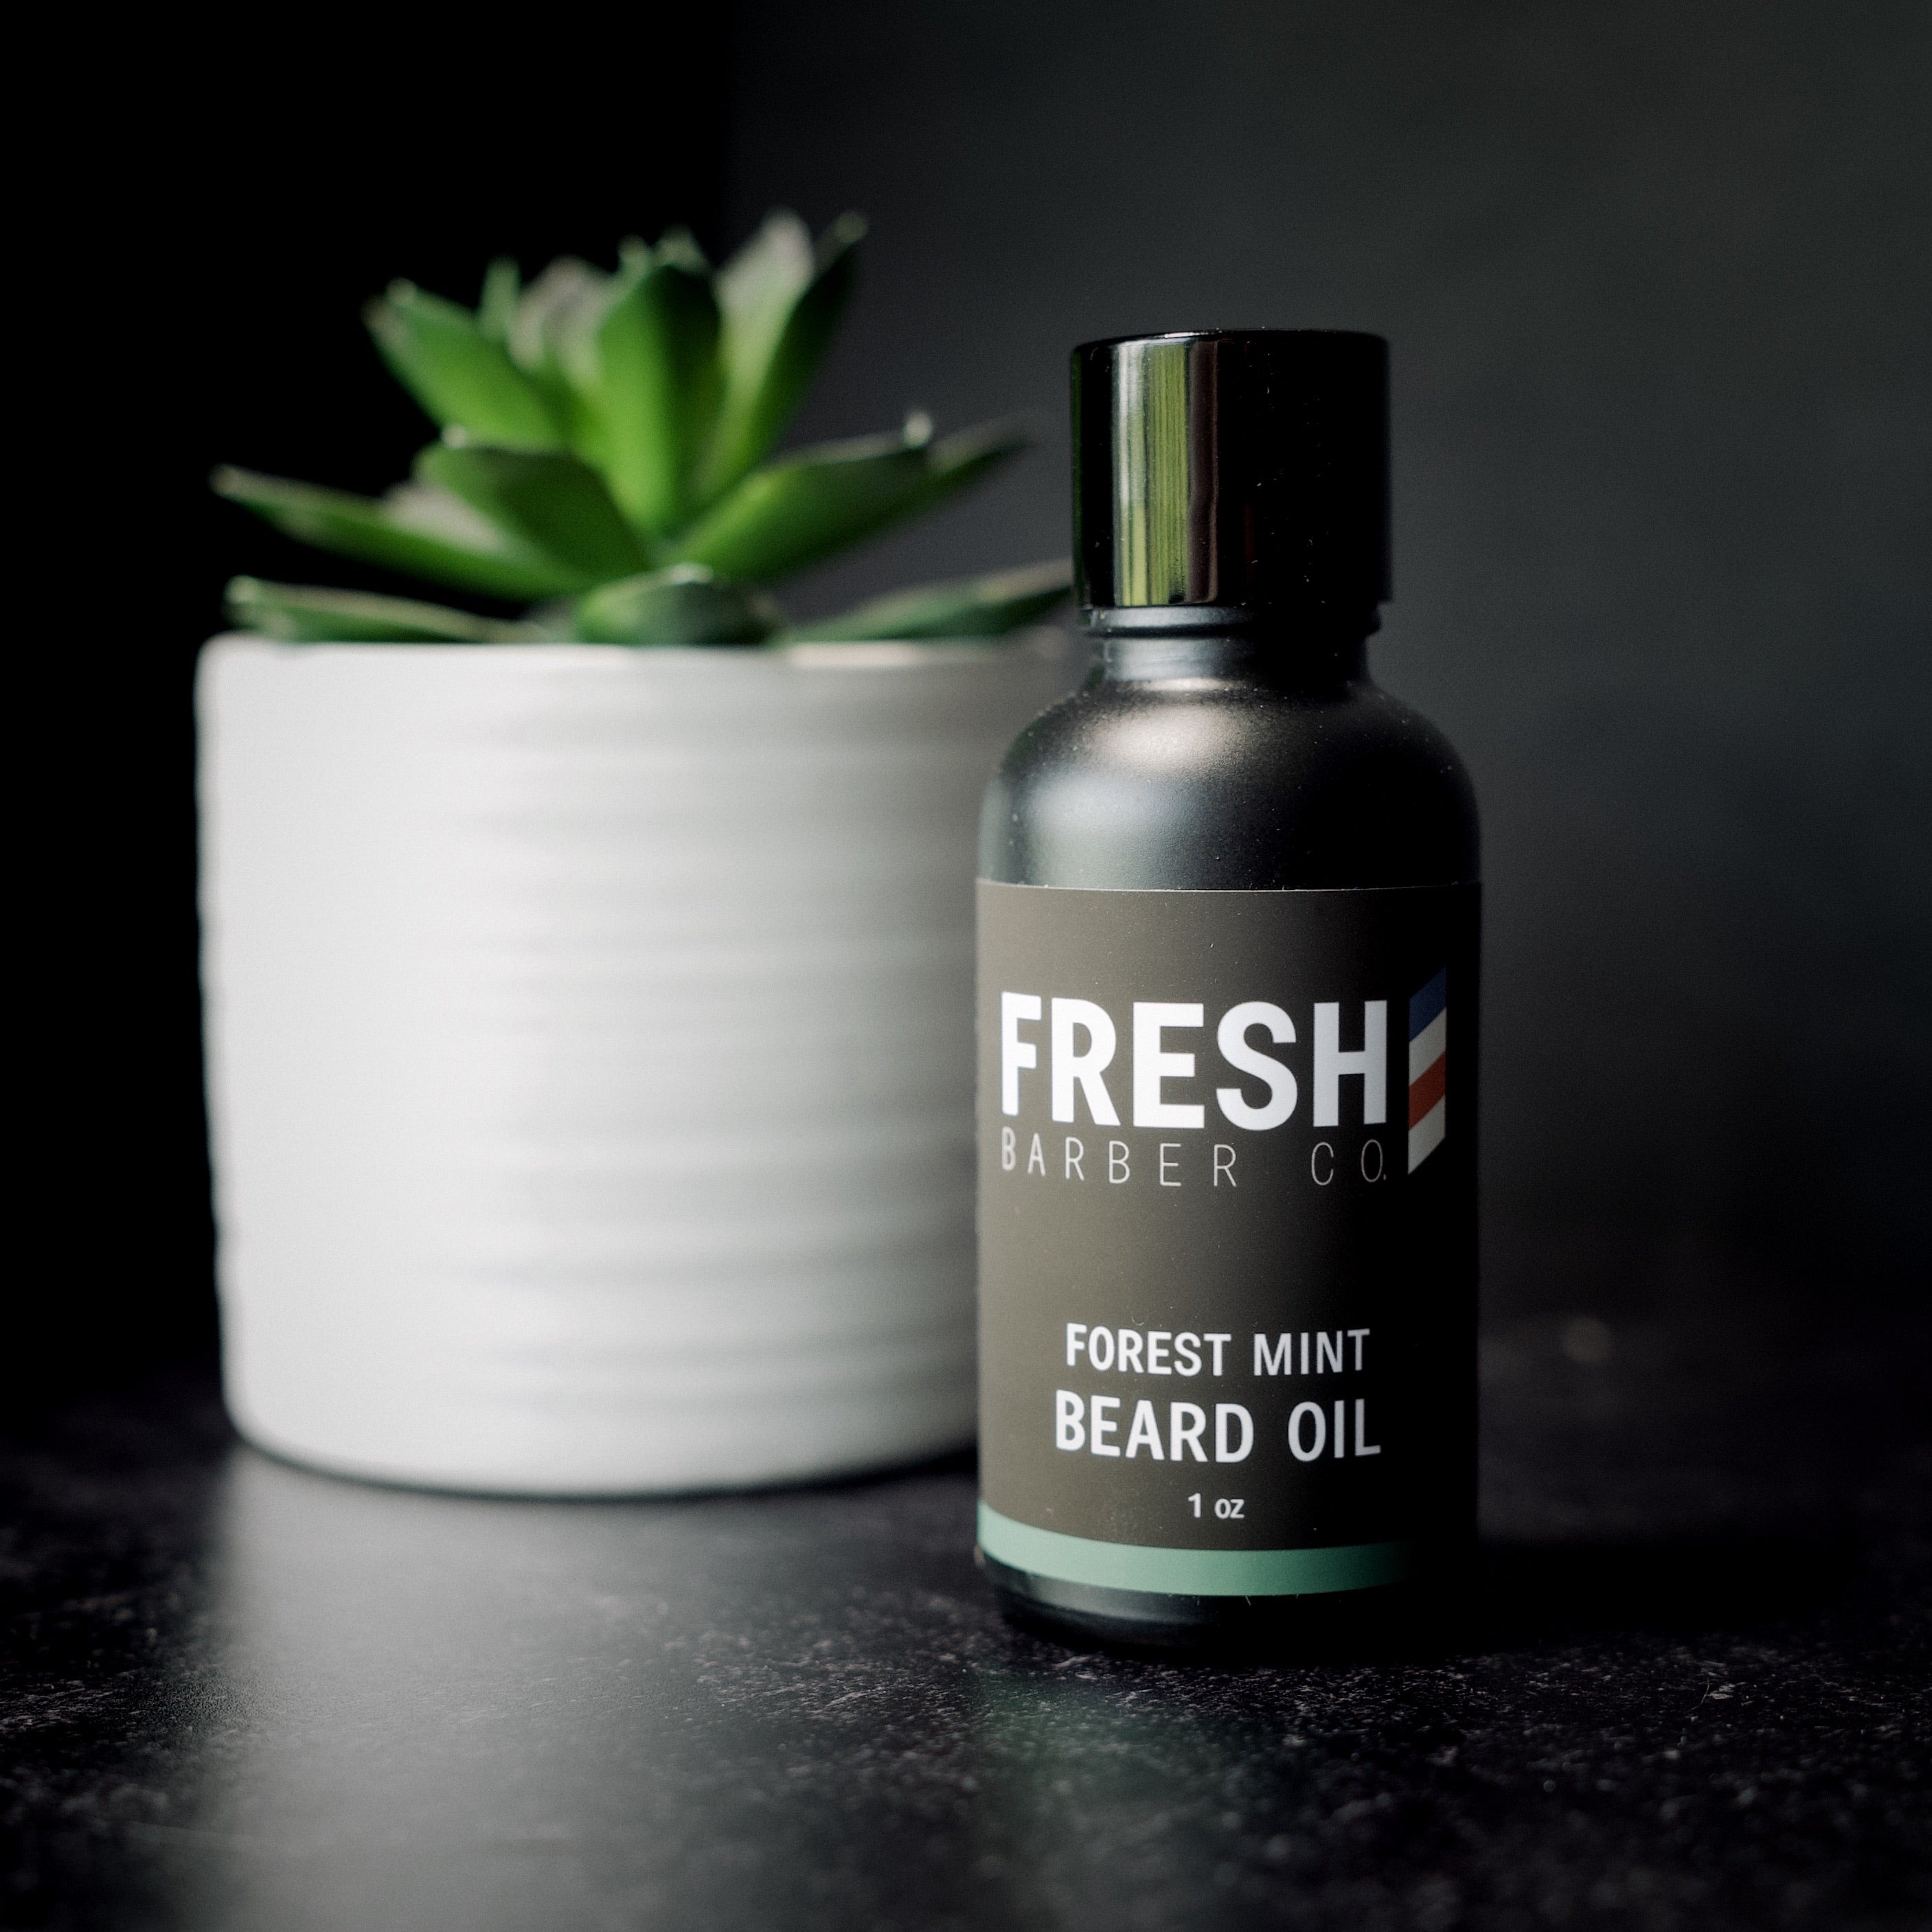 Beard Oil - Fresh Barber Co.